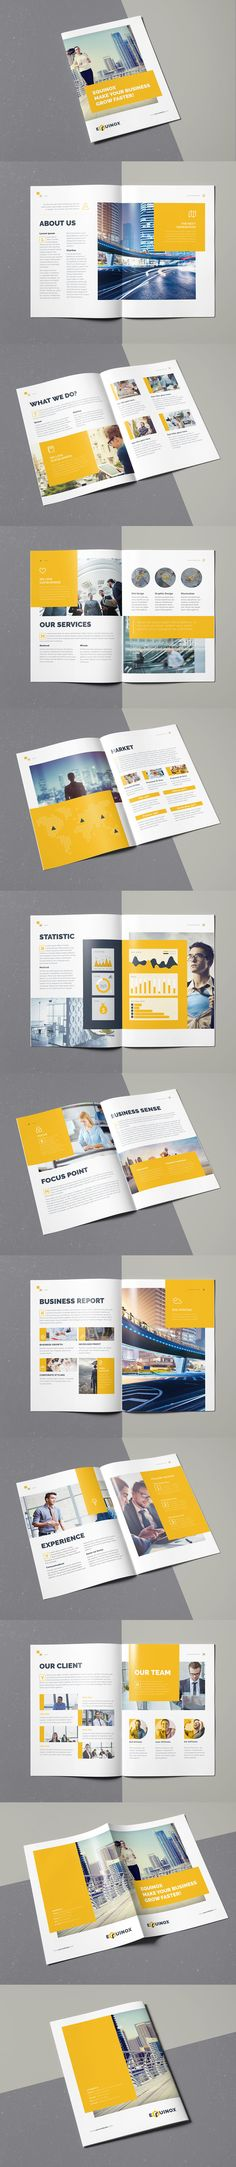 Equinox Brochure 20 Pages A4 Template InDesign INDD